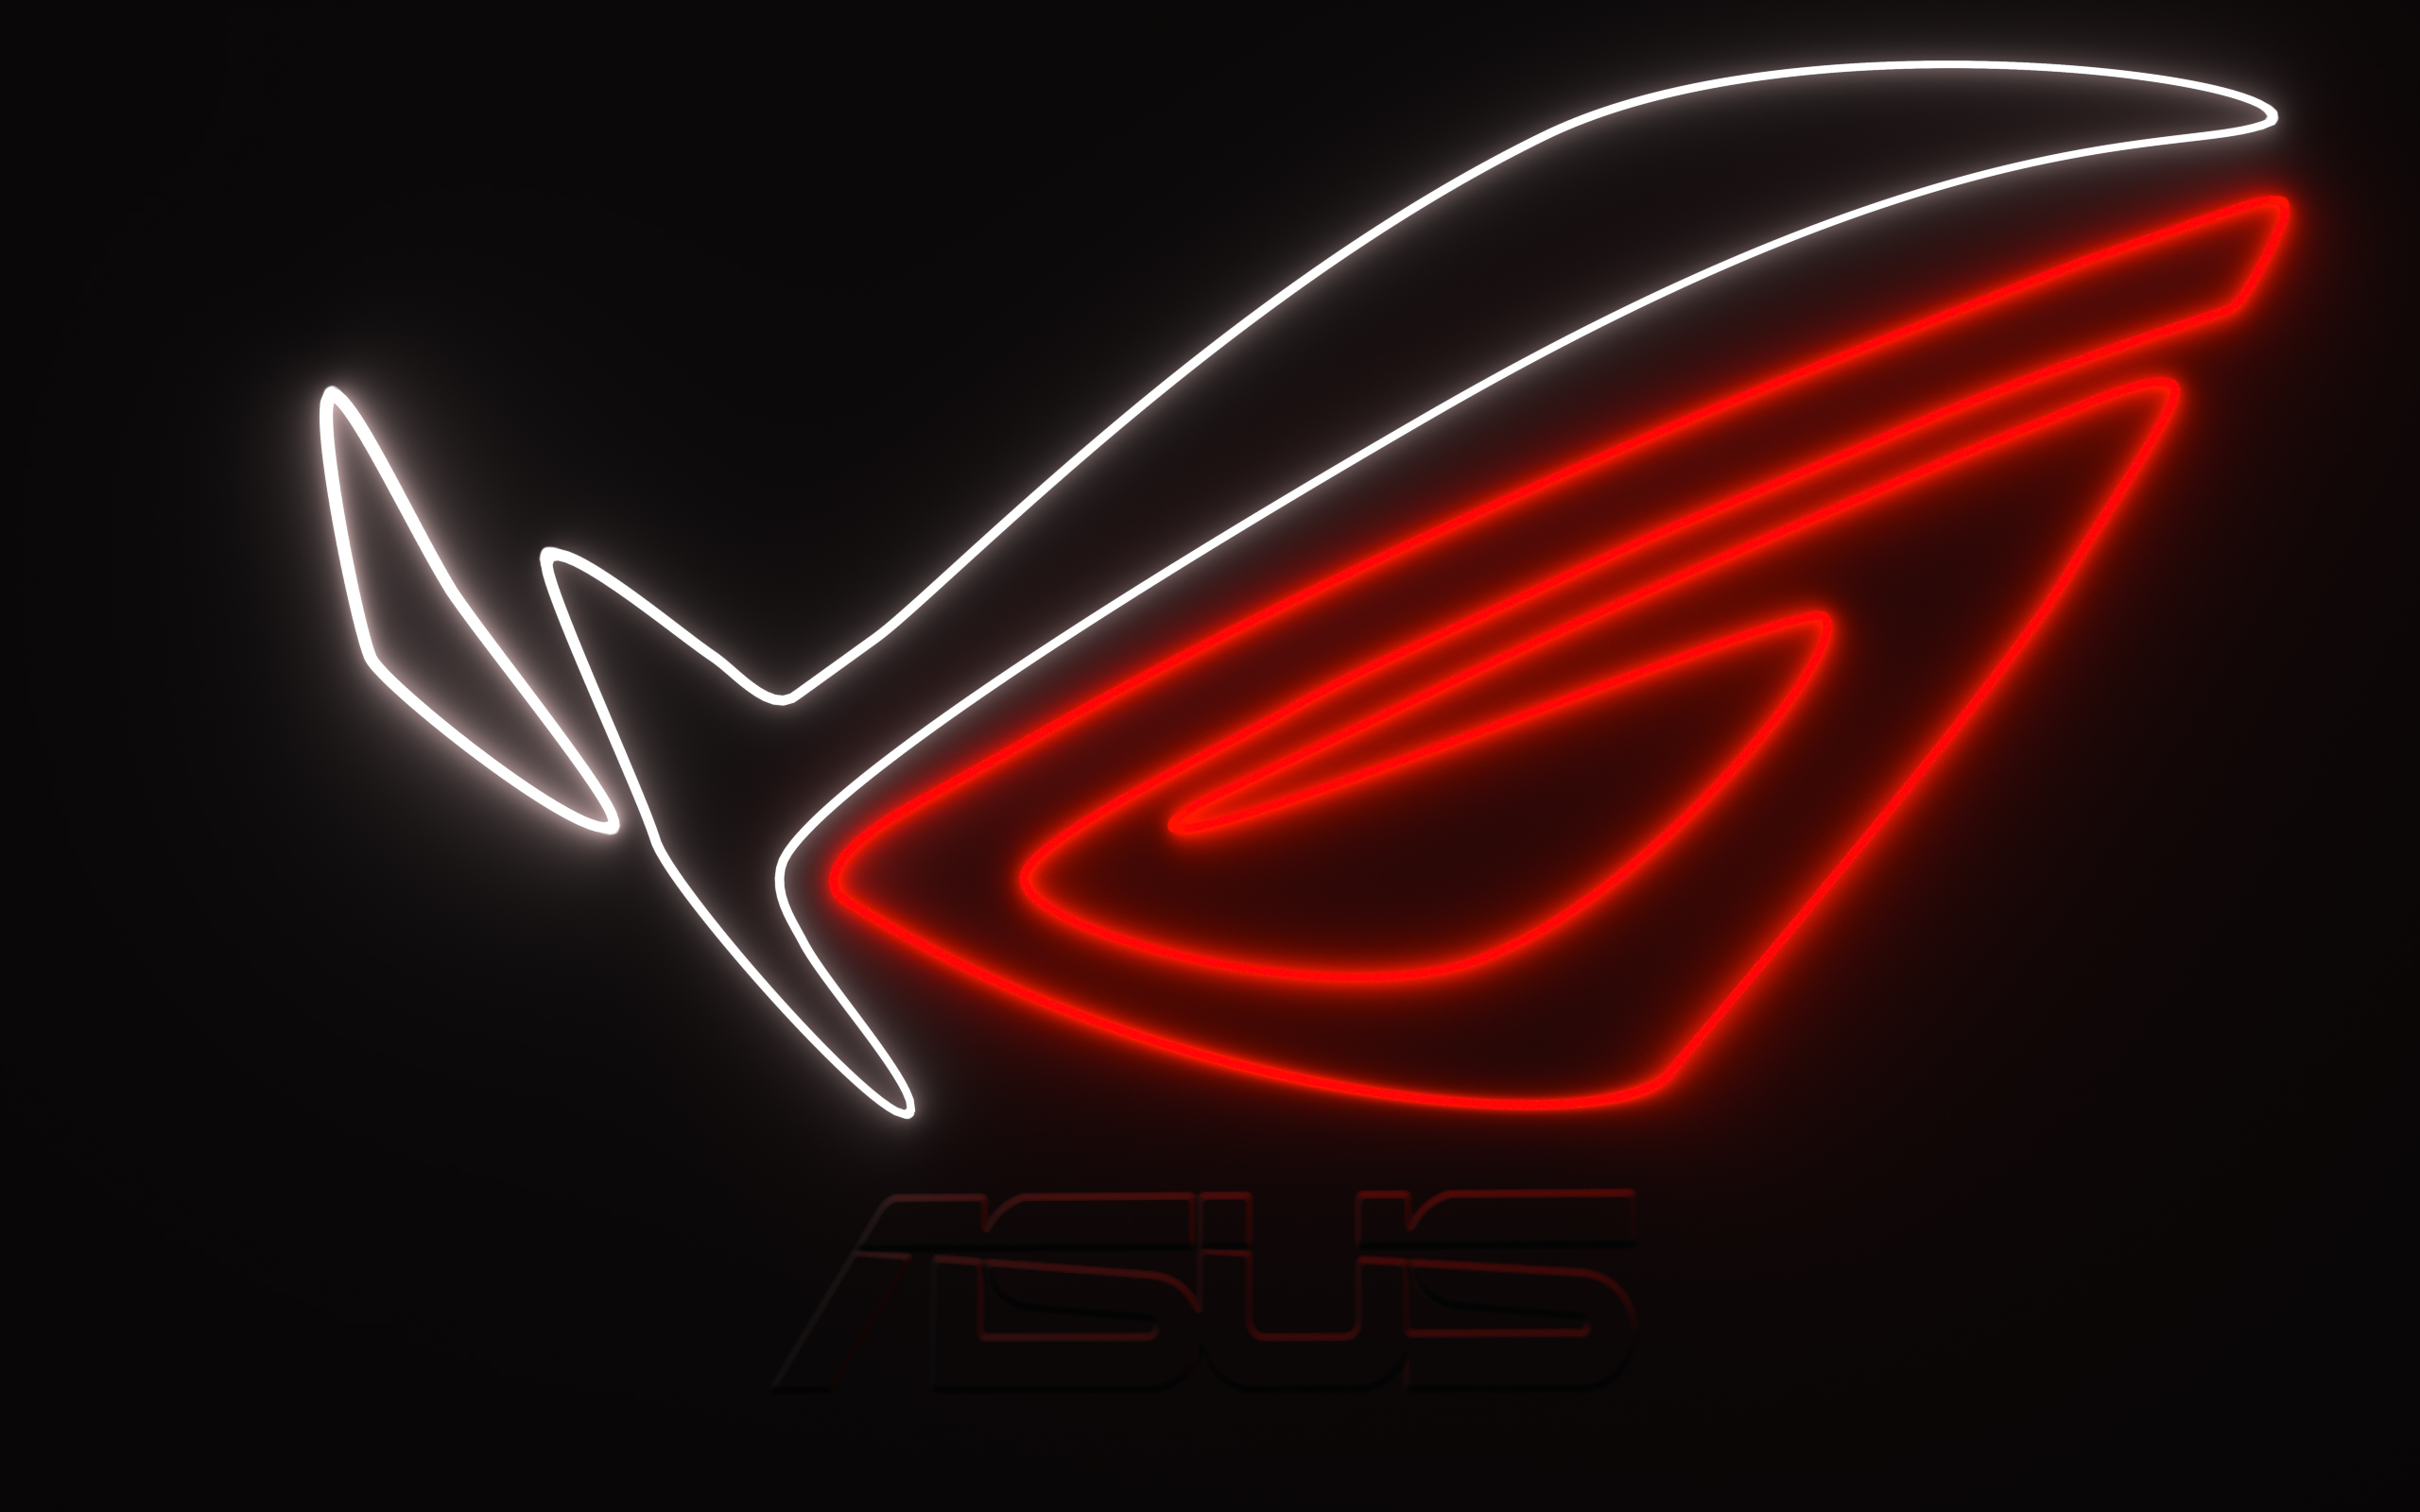 Asus Rog Wallpaper: ASUS ROG Wallpapers